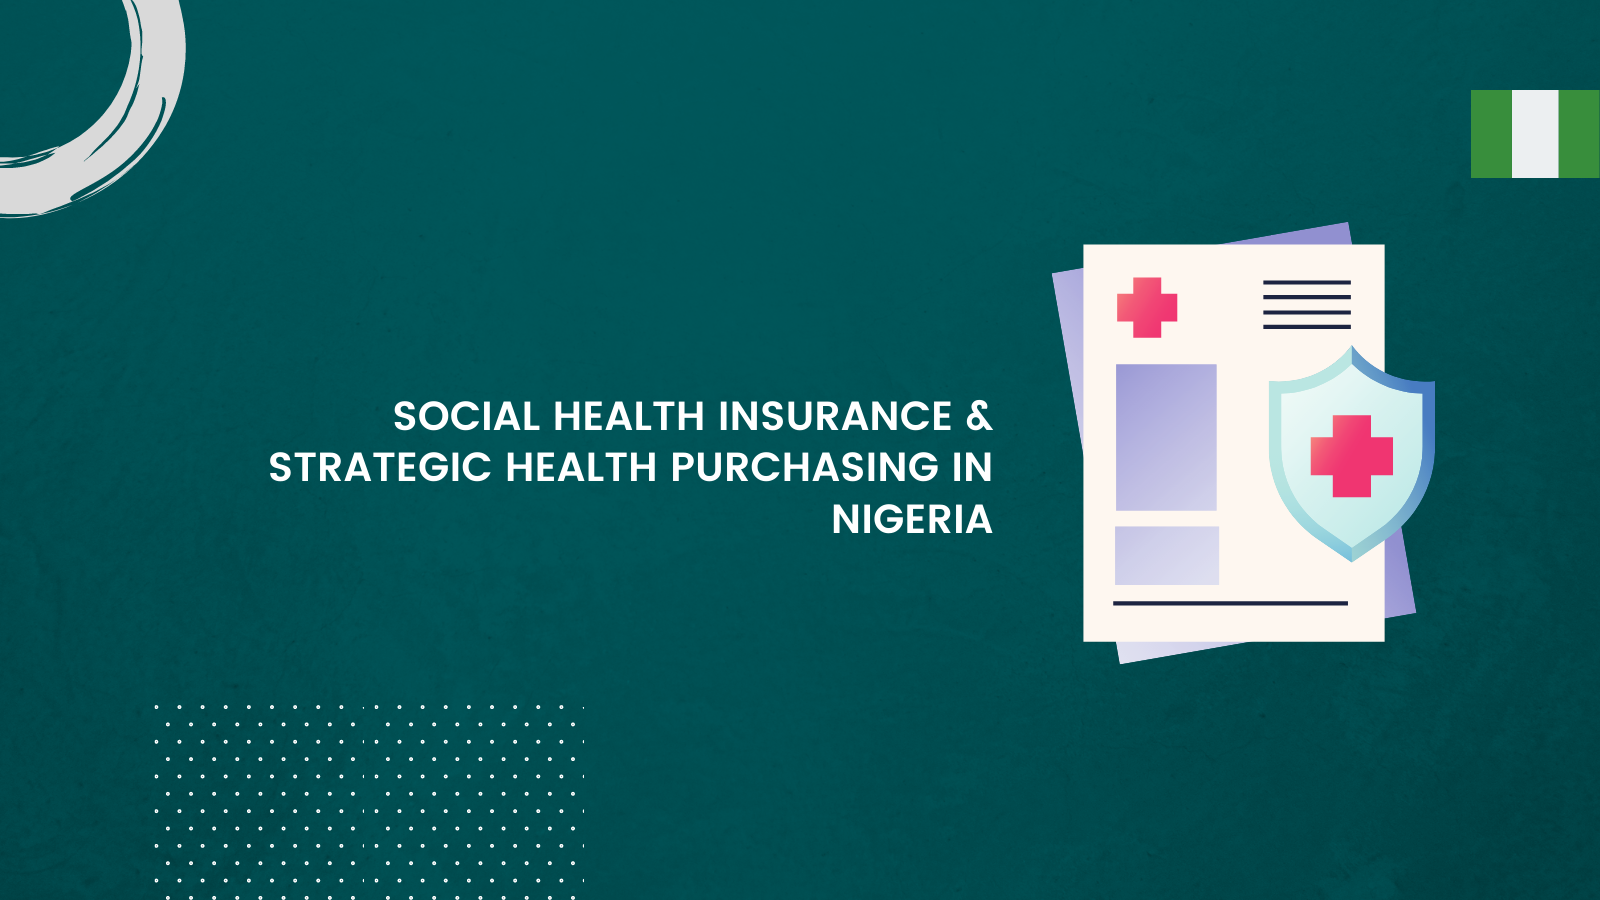 Social Health Insurance and Strategic Health Purchasing in Nigeria